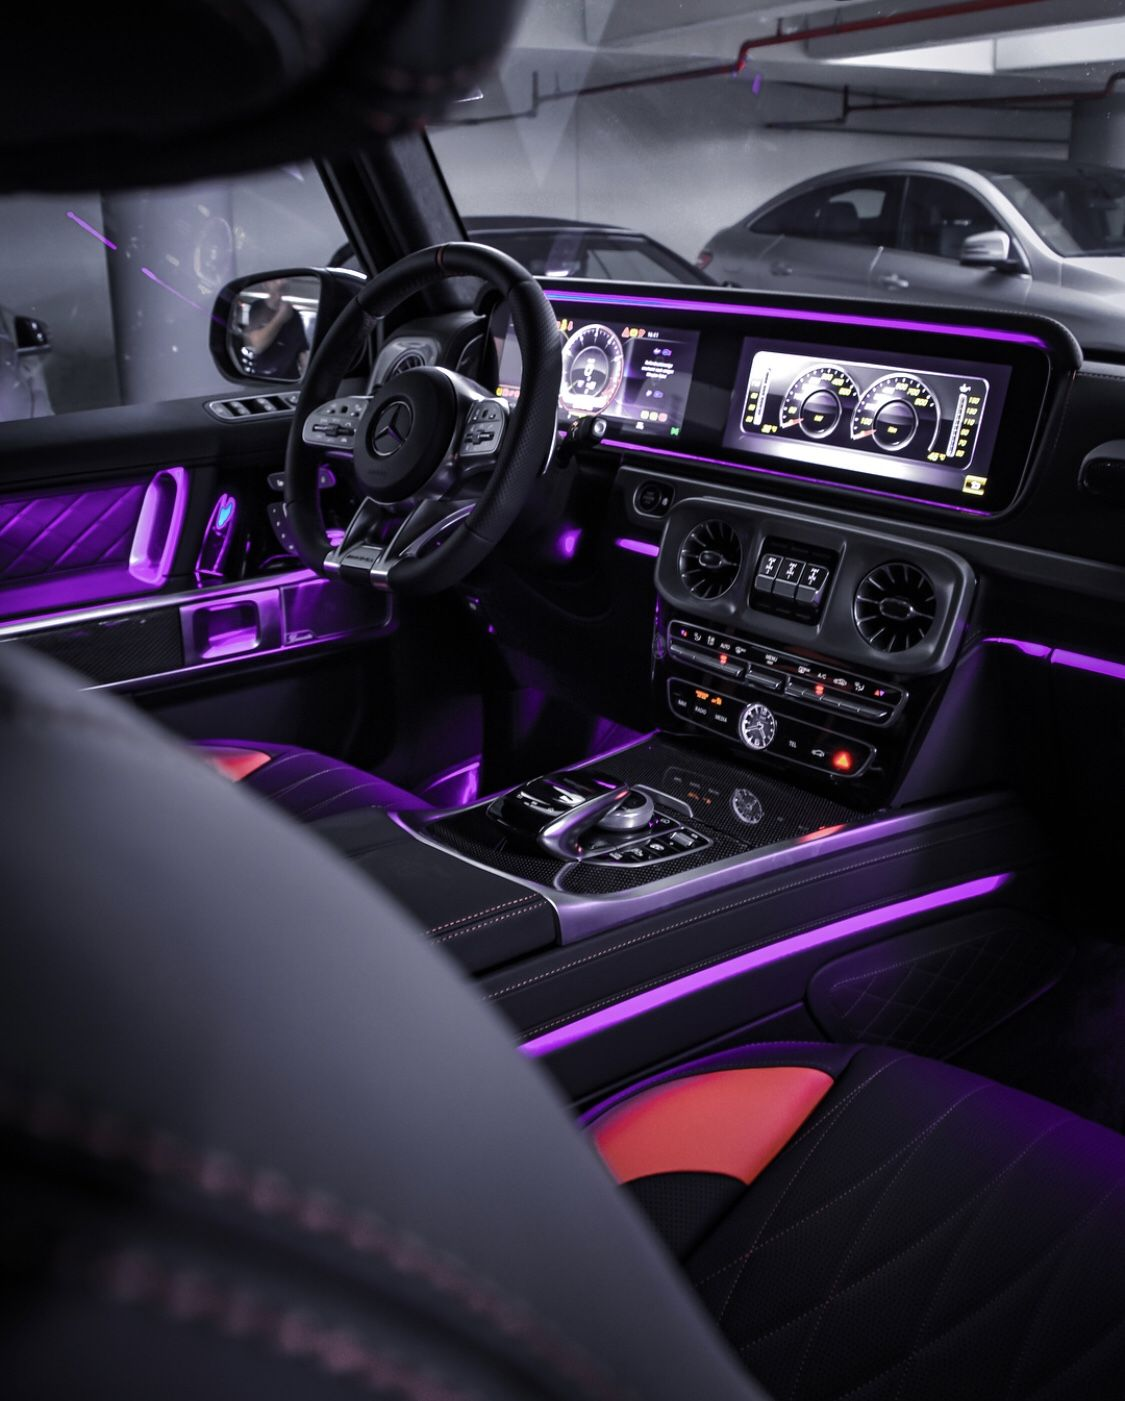 2019 Mercedes Amg E63 S Wagon: Mercedes Benz G63 2019 Interior At It's Best.